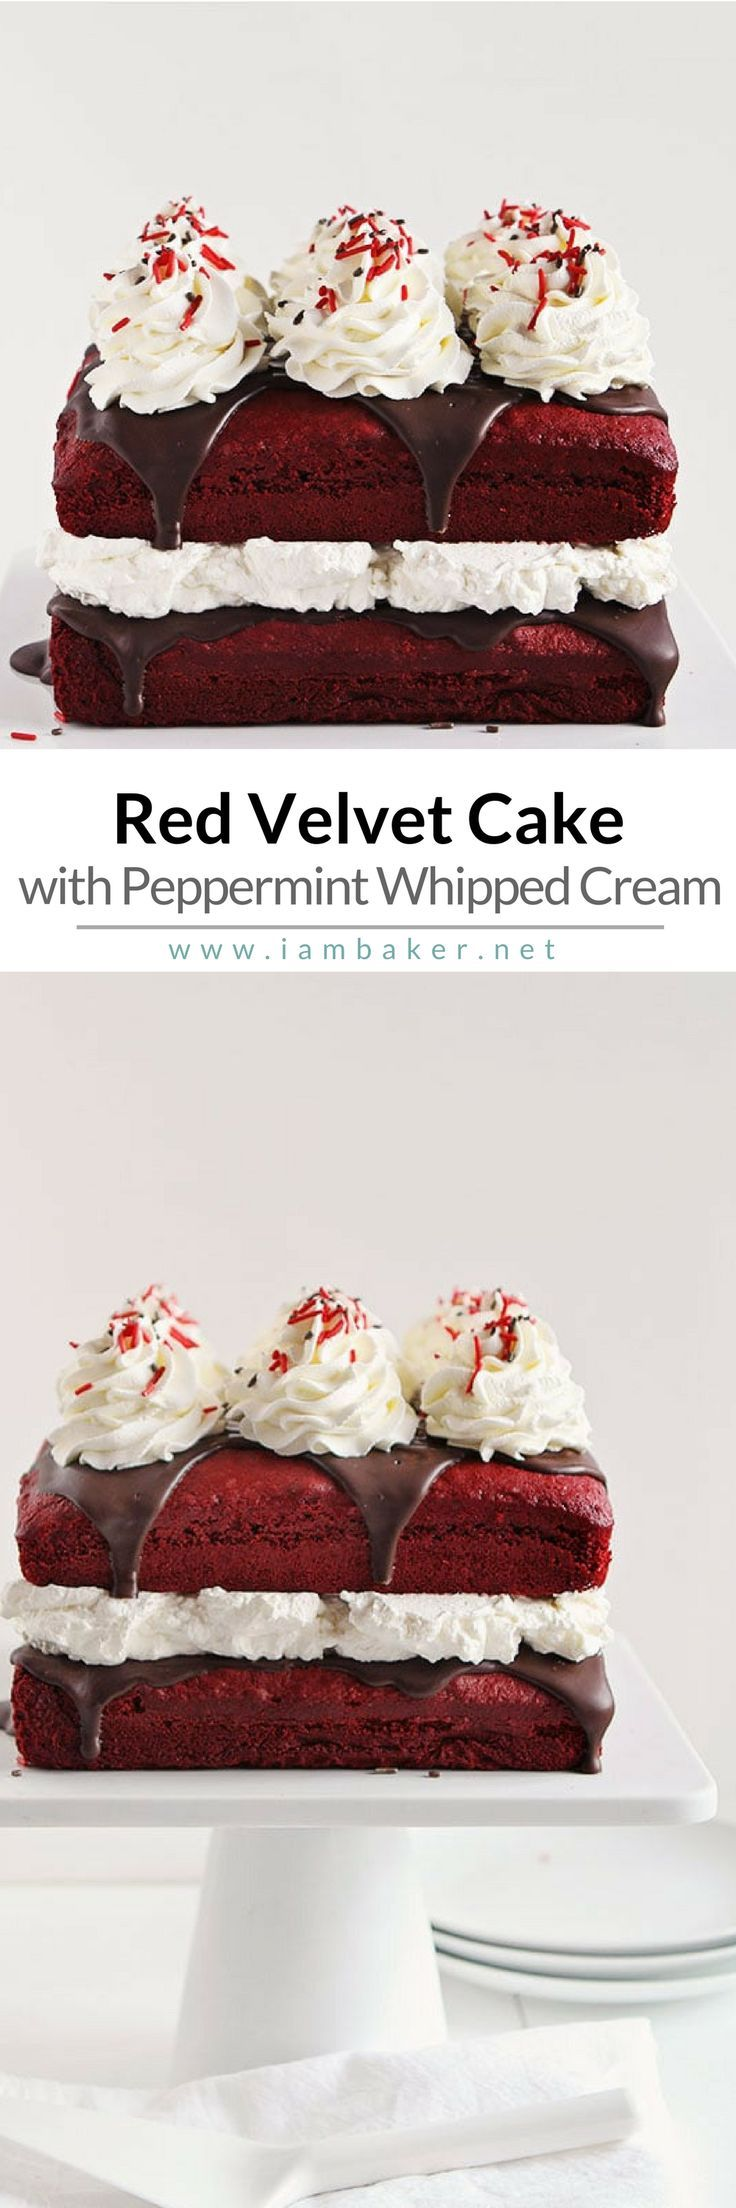 Love red velvet treats? You gotta try to make this easy dessert recipe- Red Velvet Cake with Peppermint Whipped Cream! This is seriously the PERFECT cake for any holiday celebration! For more simple baking and easy dessert recipes, check us out @iambaker. #iambaker #iambakercake #cakes